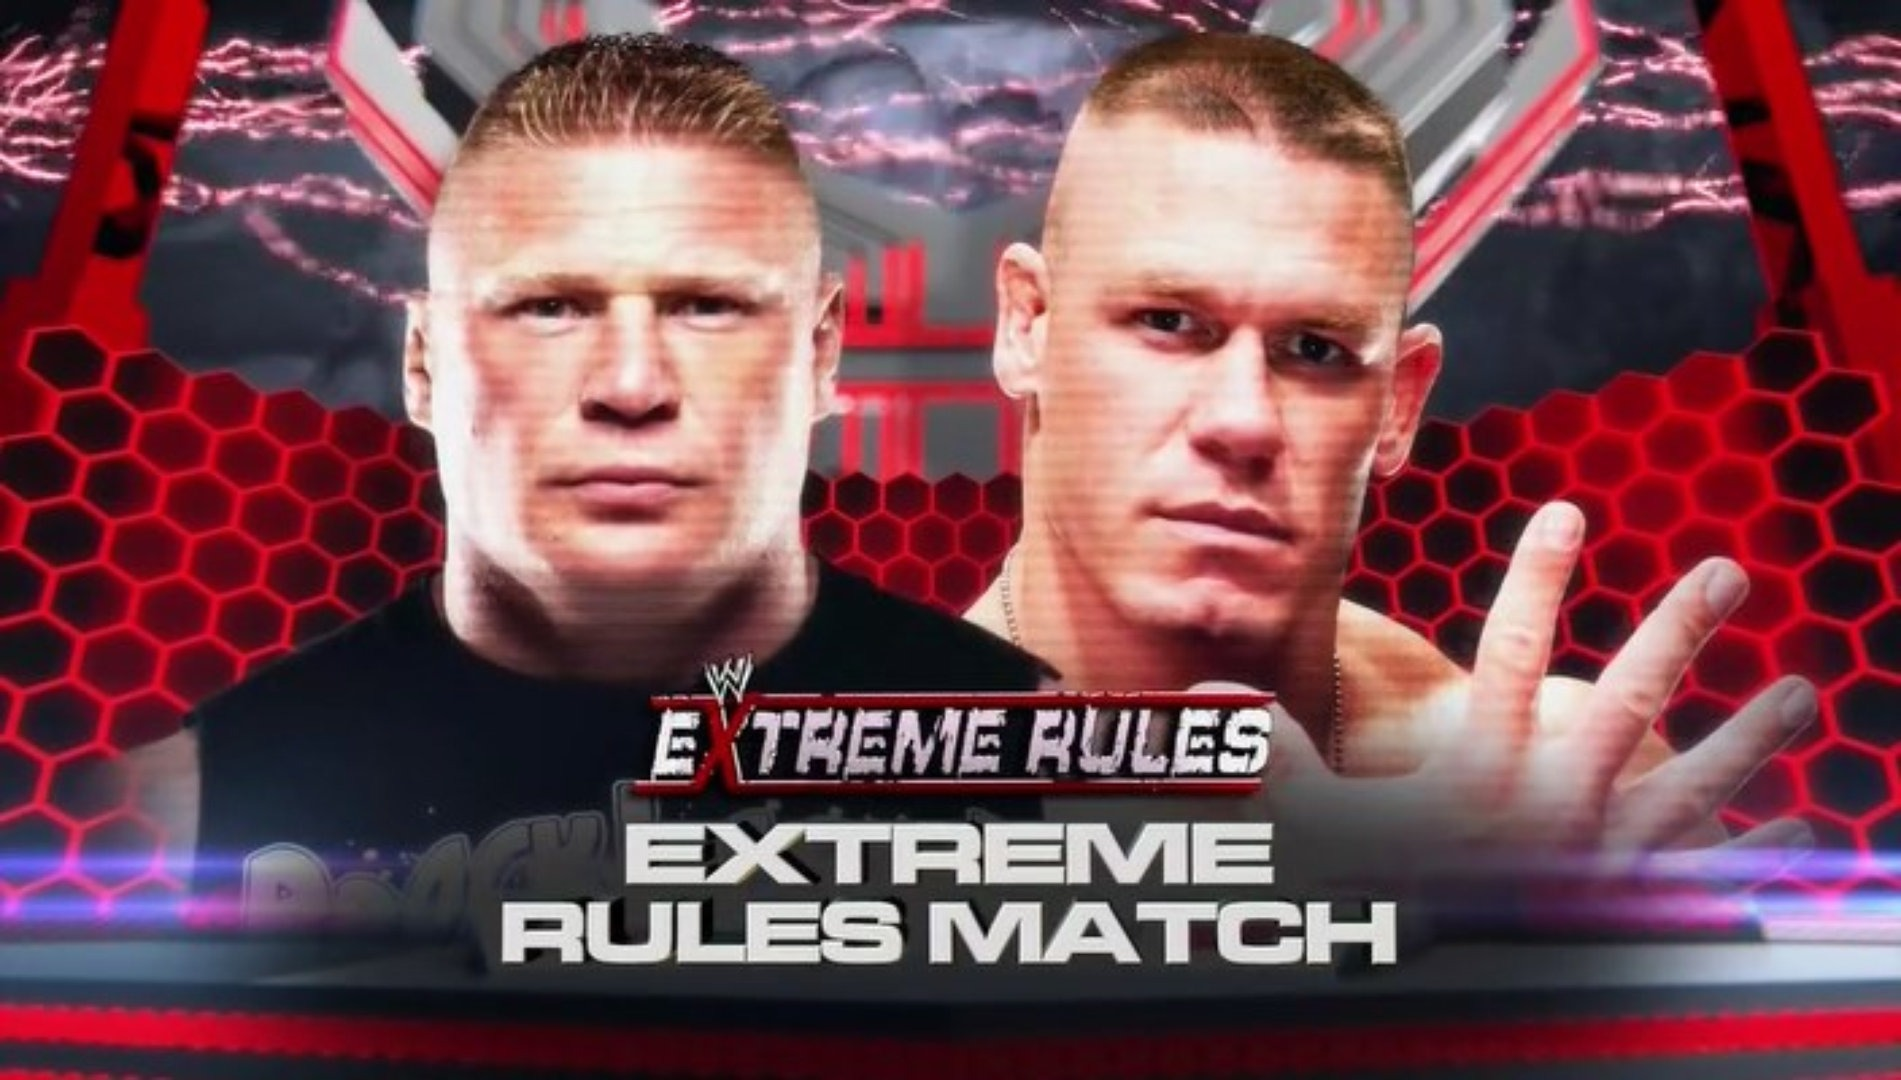 EXTREME RULES BROCK LESNAR